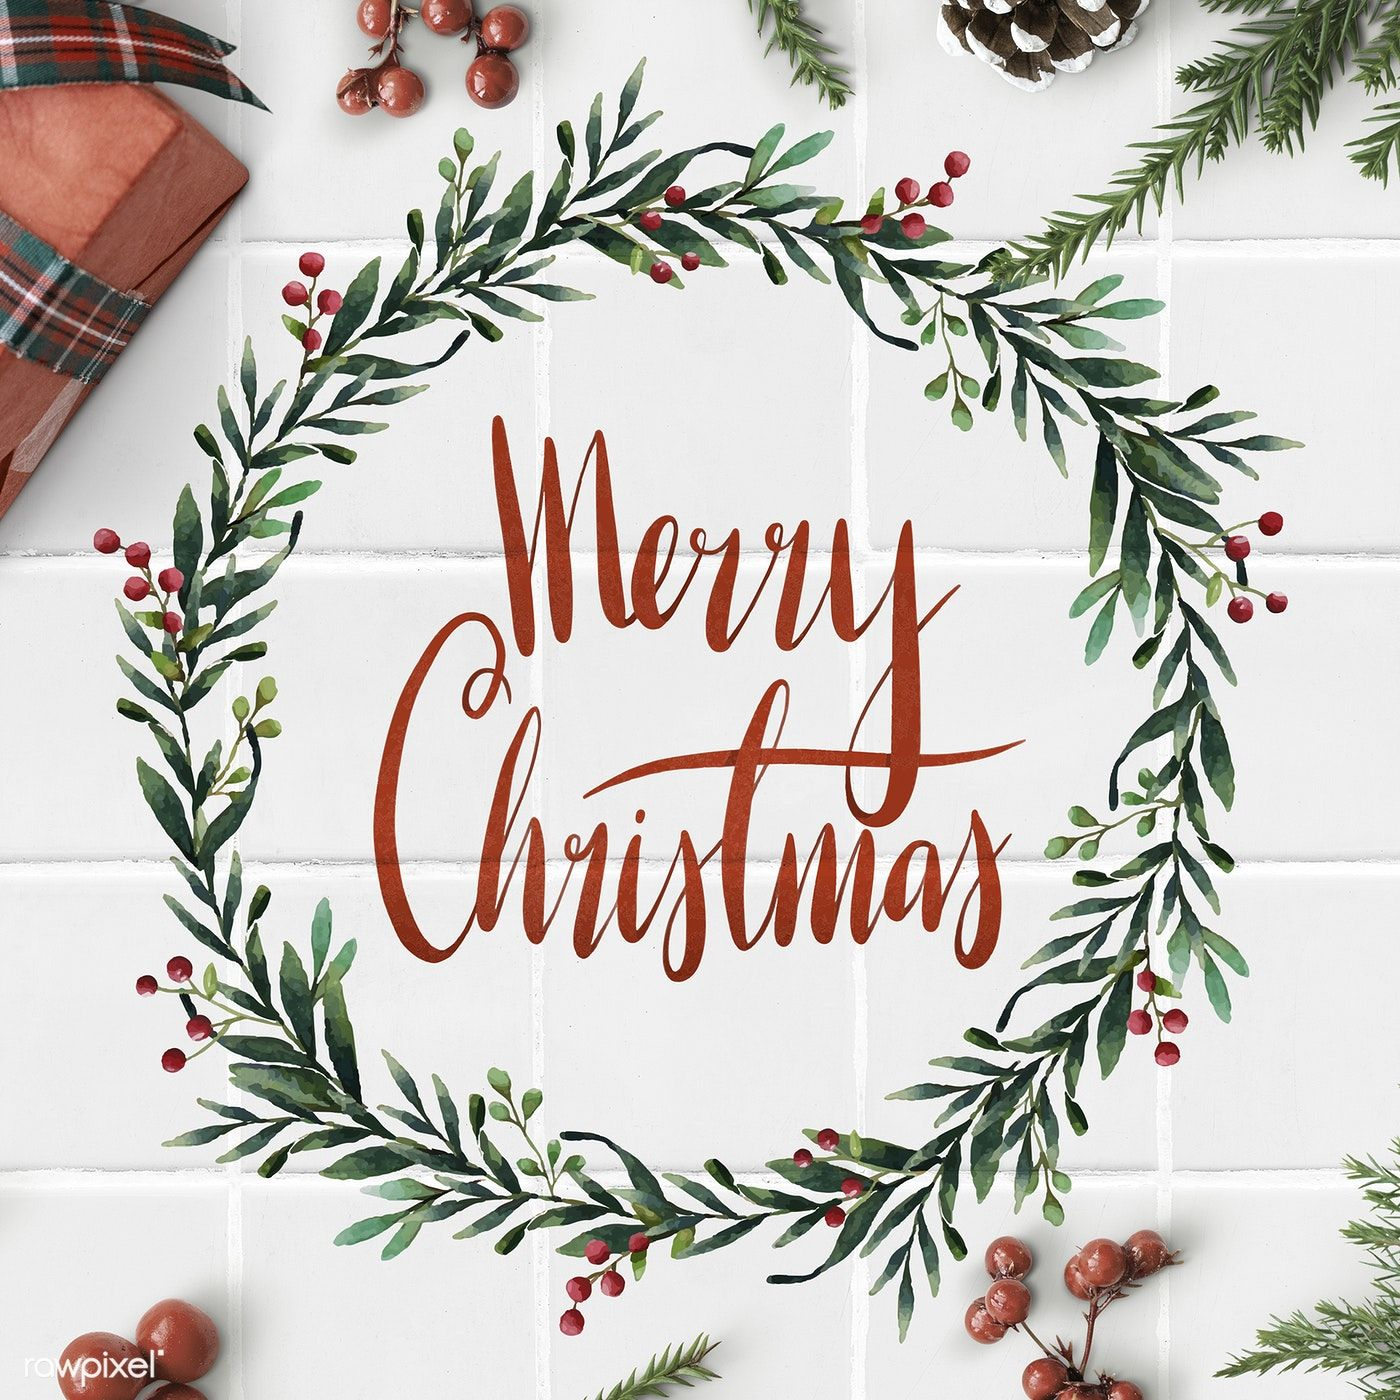 Download Premium Psd Of Merry Christmas Greeting Card Mockup 519992 Merry Christmas Card Greetings Minimalist Christmas Card Christmas Greeting Cards